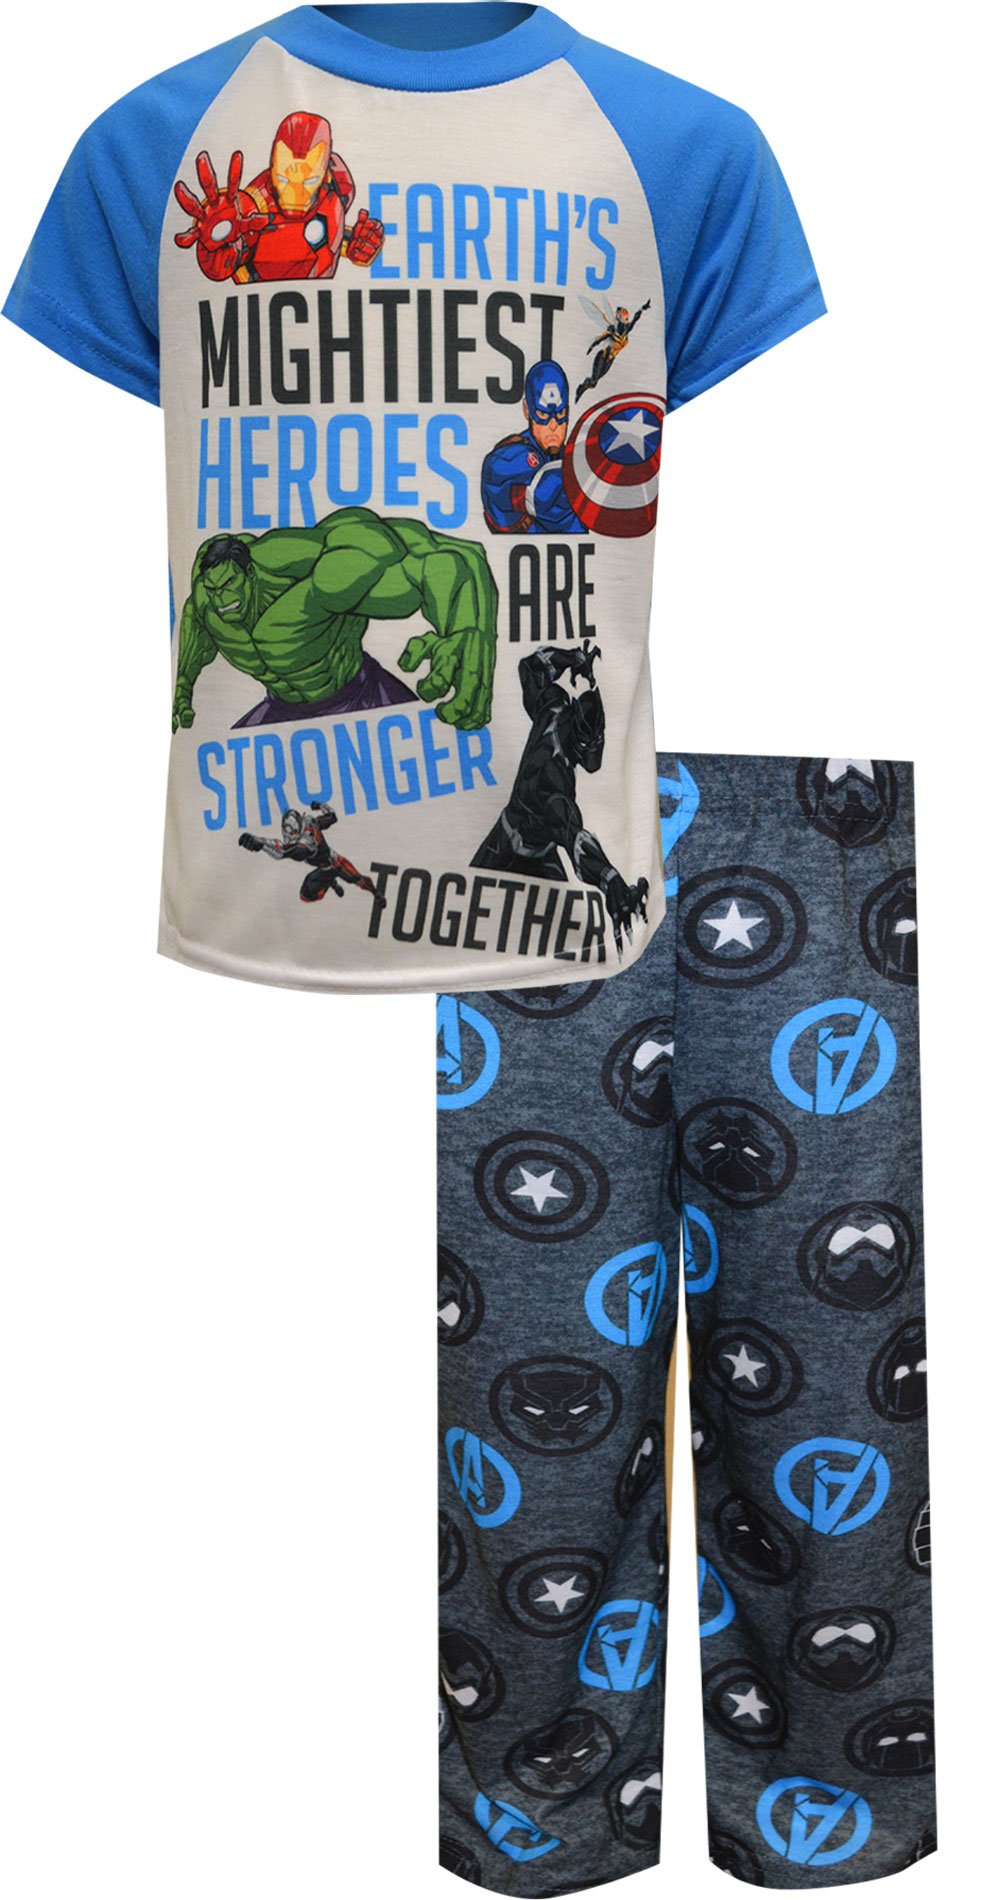 Image of Marvel Comics Heroes Are Stronger Together Pajamas for boys